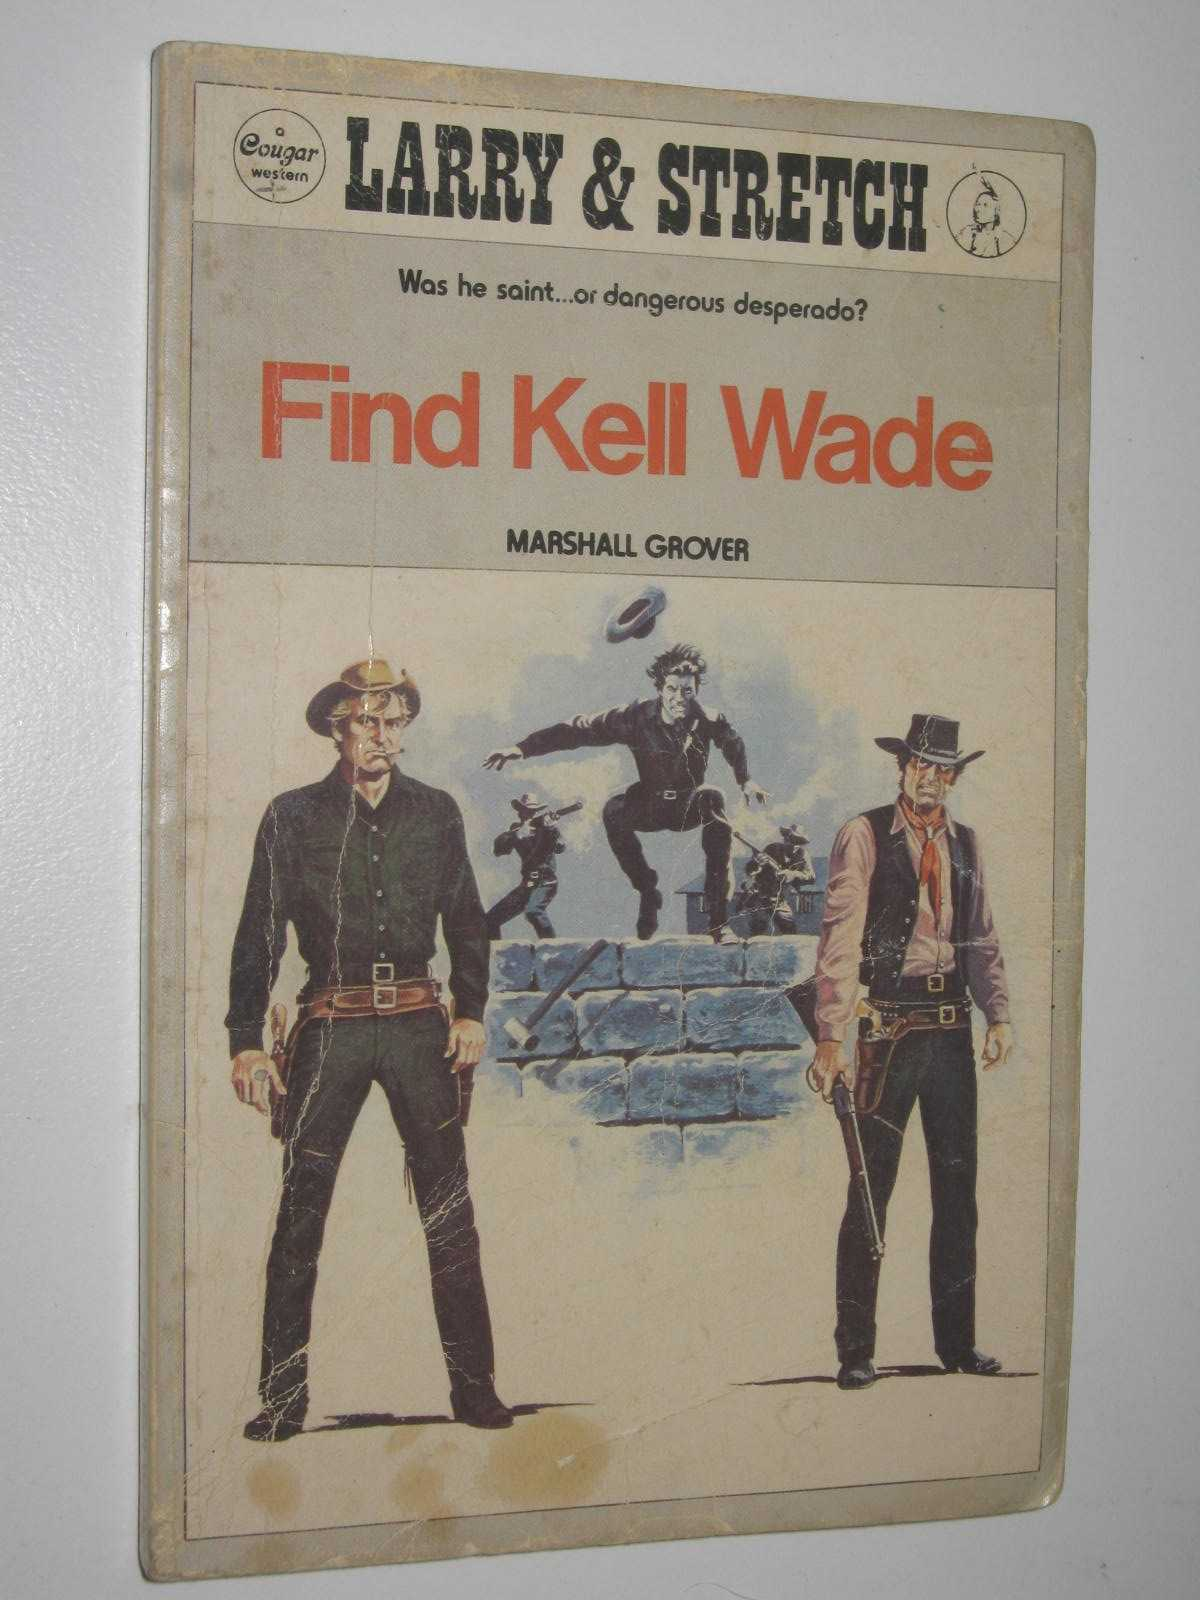 Image for Find Kell Wade - Larry and Stretch [Cougar Western] Series #15